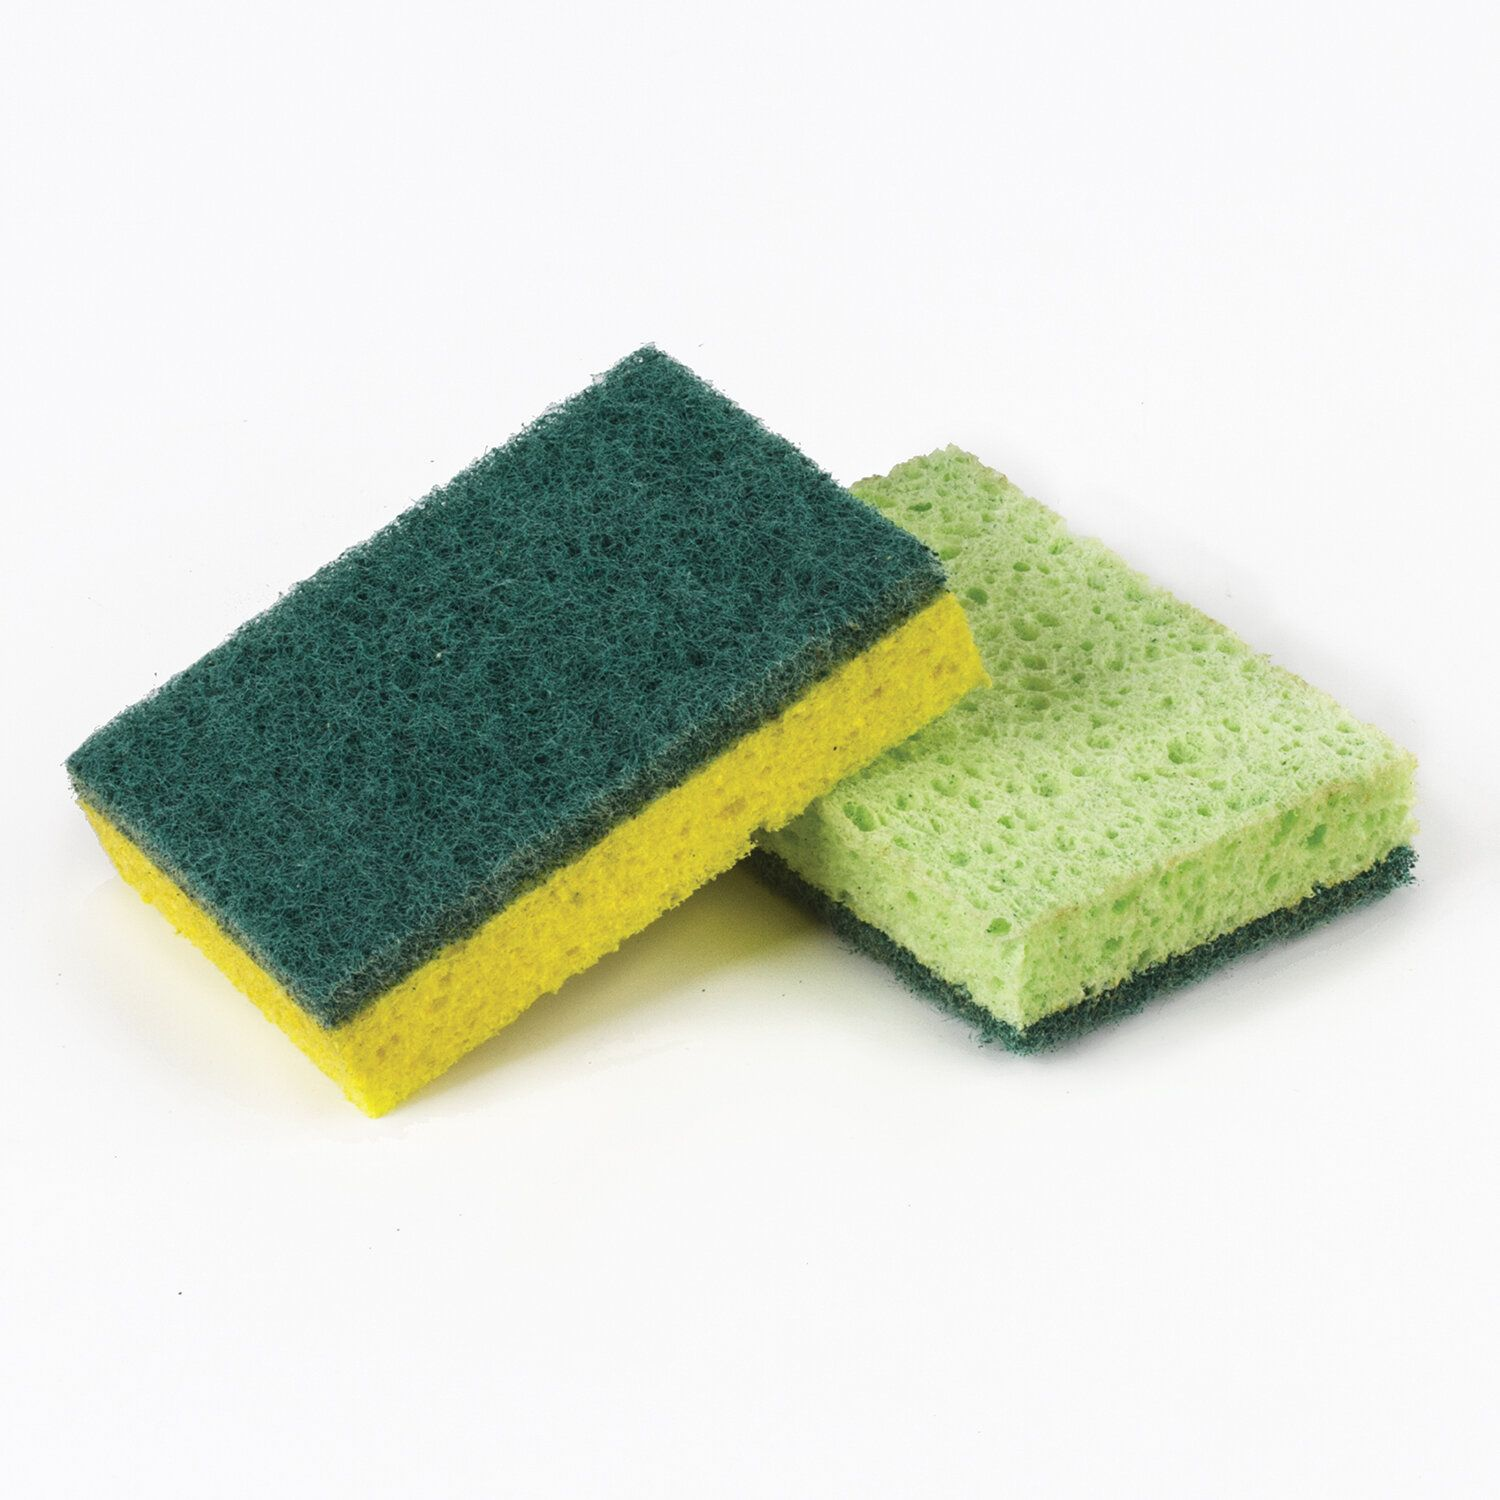 LIMA / Household sponges SET 2 pcs., Cellulose (spongy) with abrasive, 2x9.5x6.5 cm